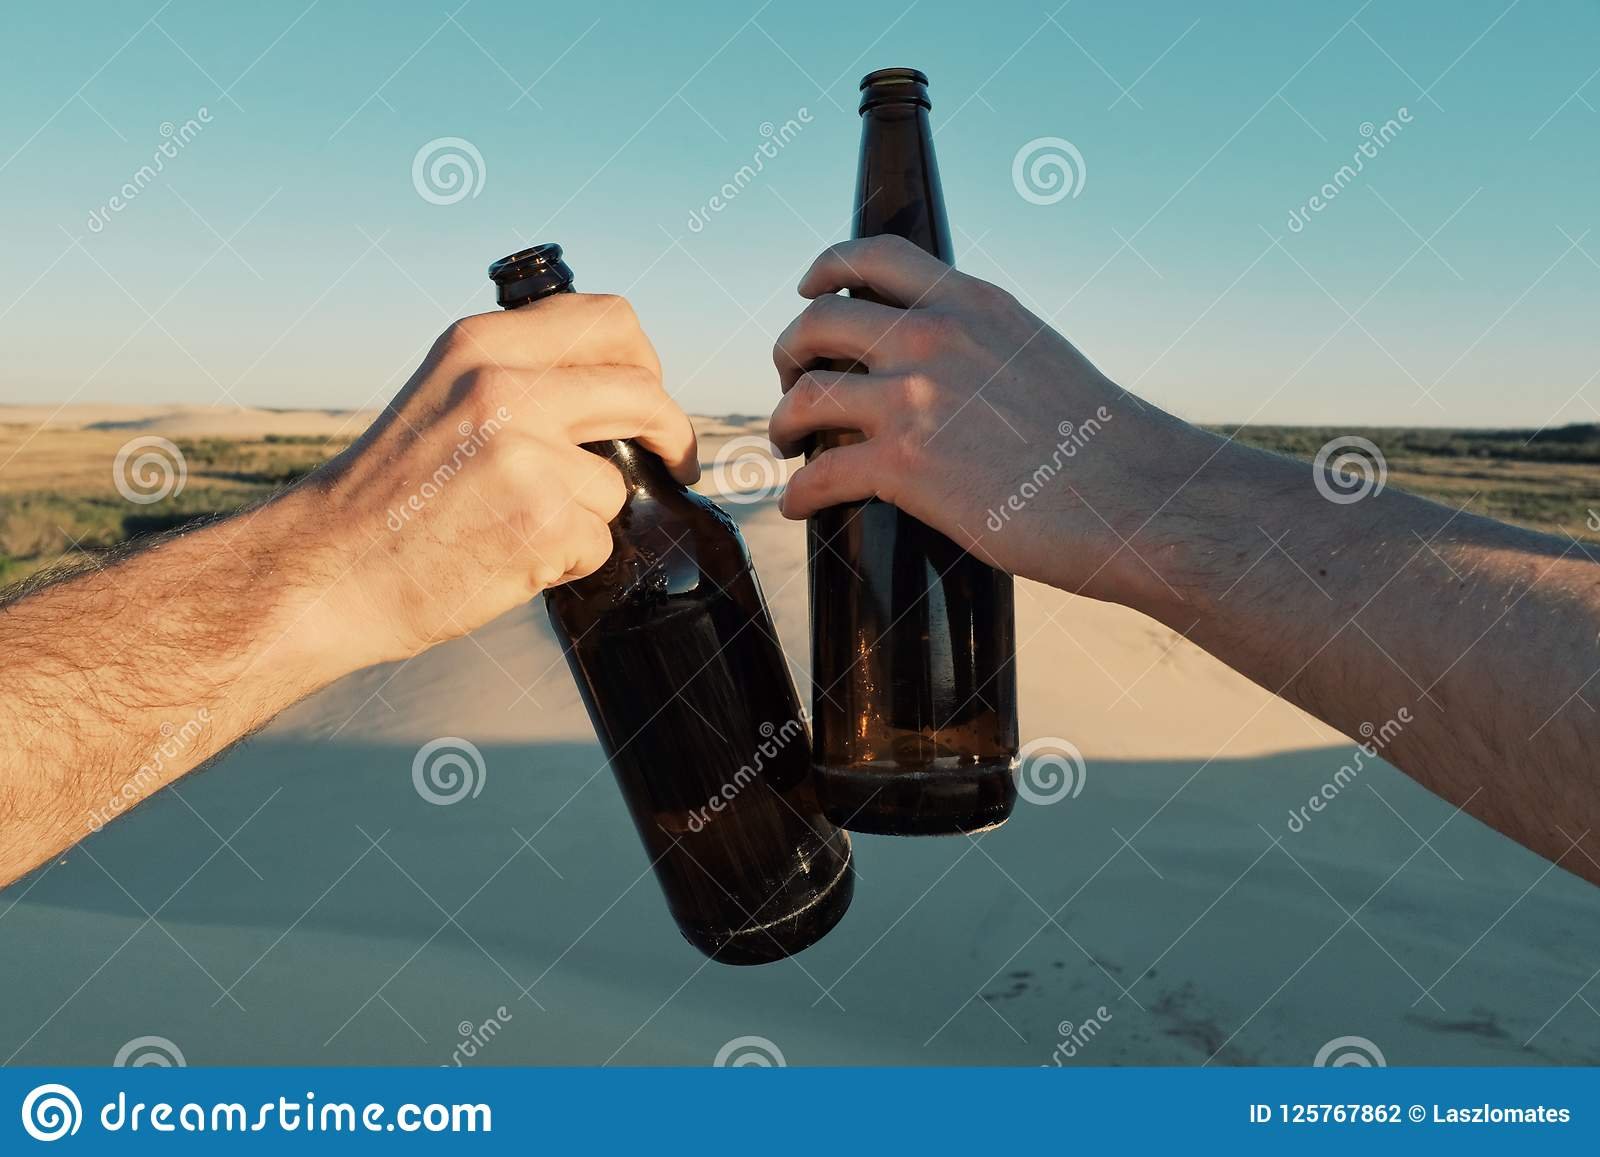 Two Young Man Clinking Beer Bottles Of Beer In The Desert